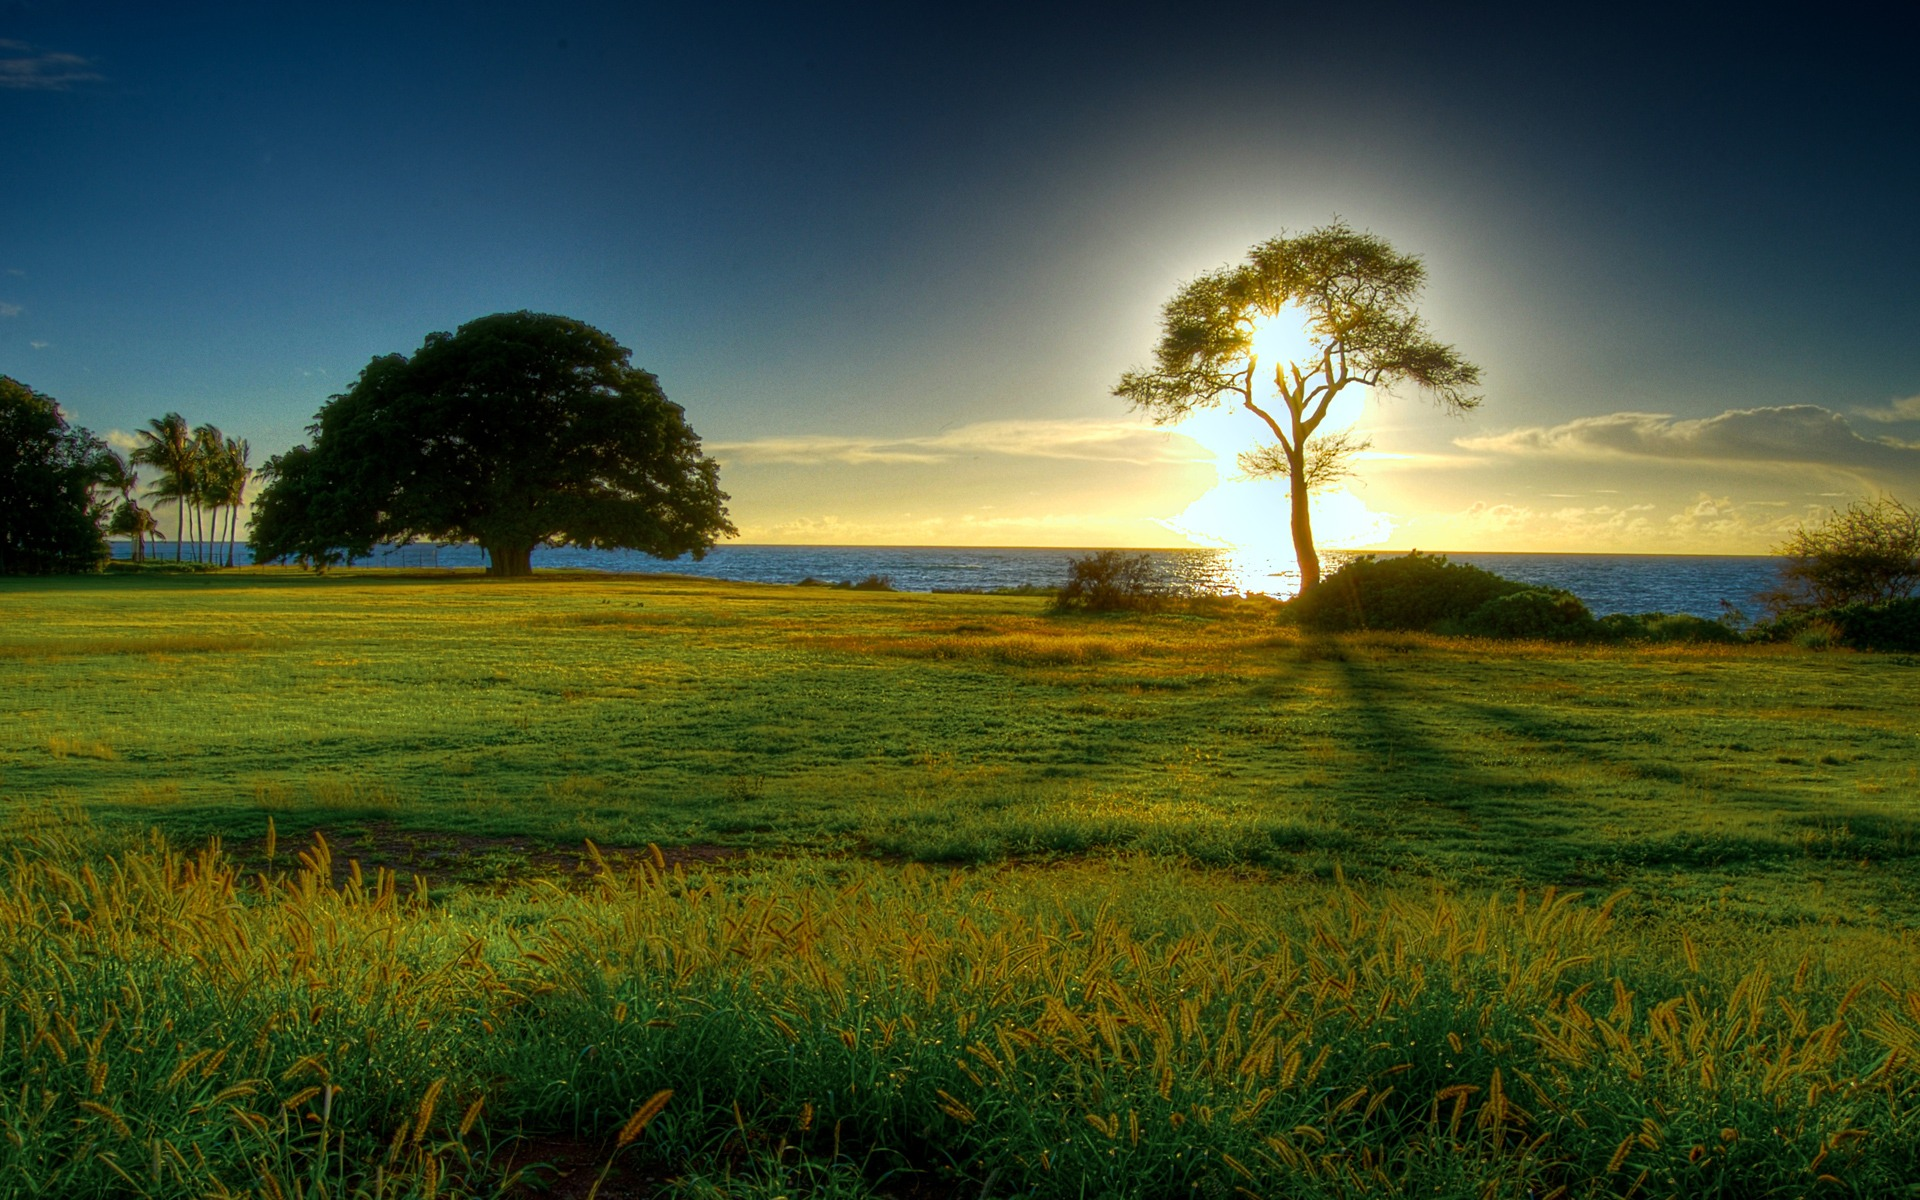 Tree Of Light Wallpaper Landscape Nature Wallpapers